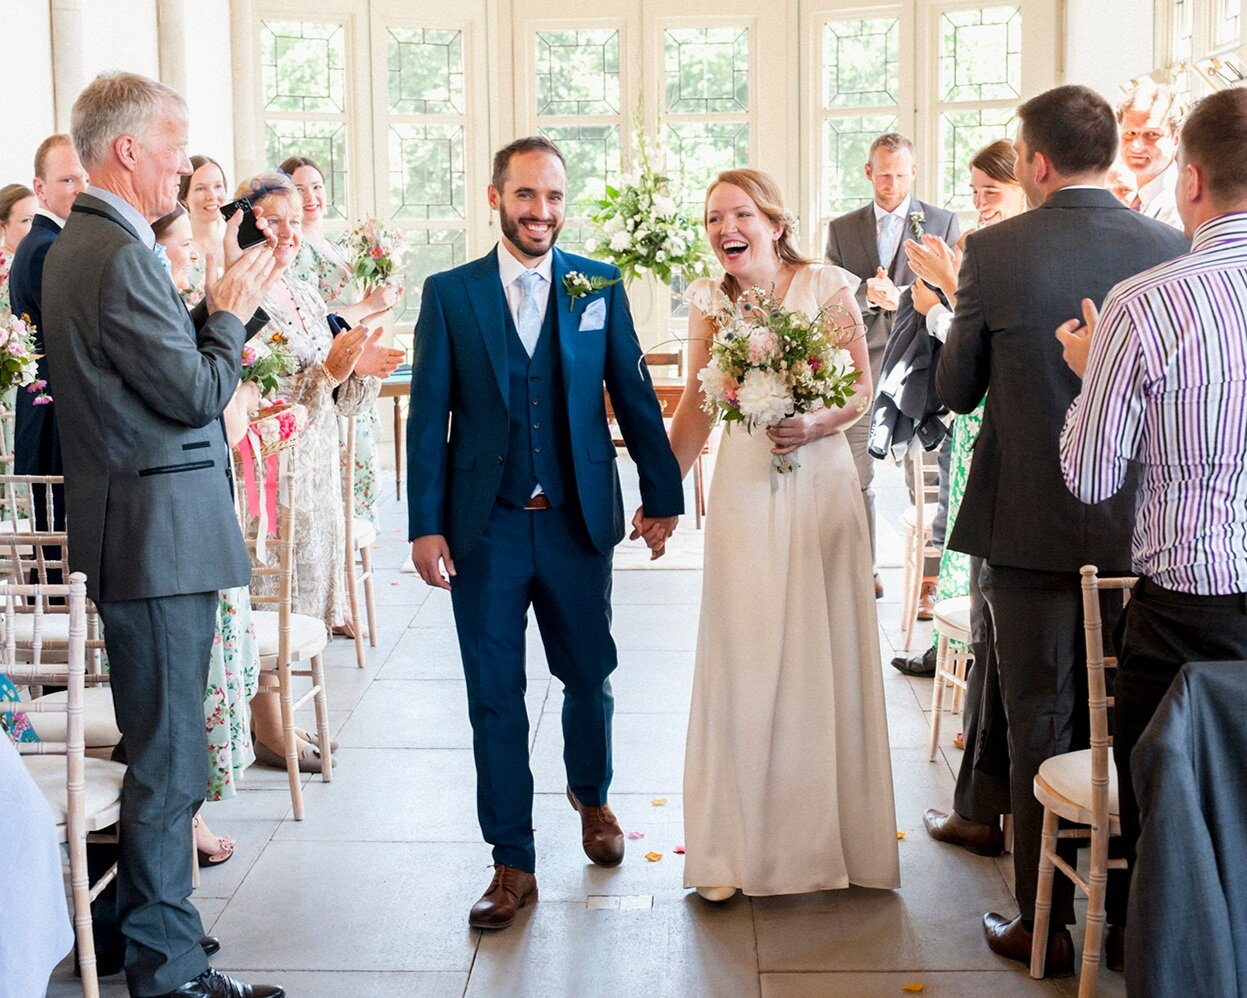 Lucy+and+Ivan+Wedding+Day-98.jpg